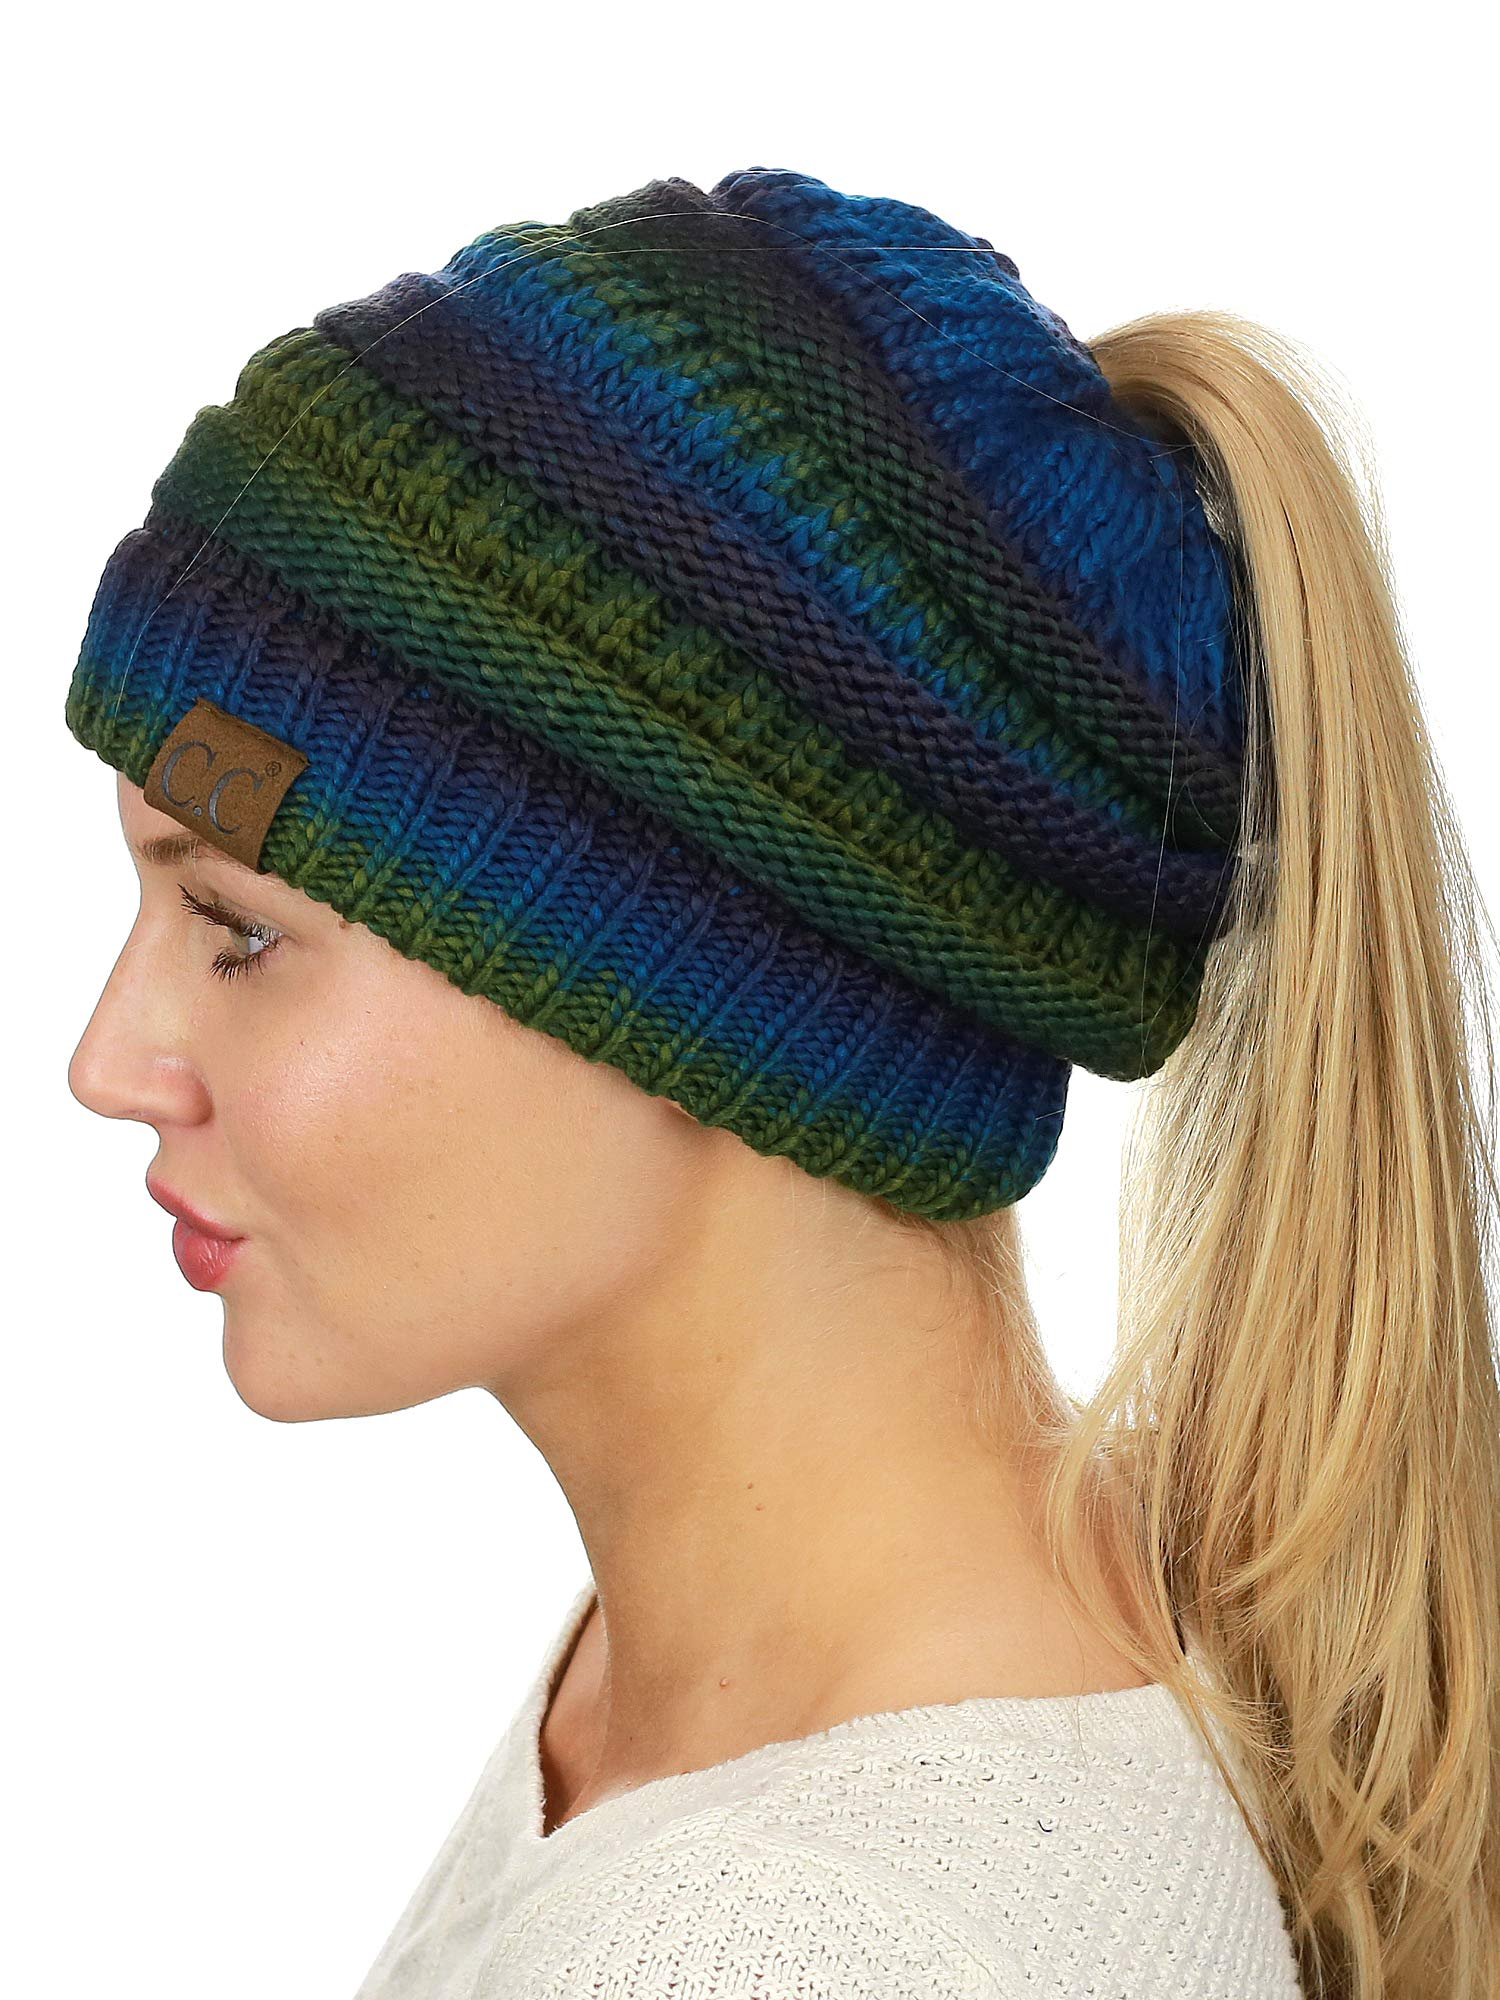 C.C BeanieTail Soft Stretch Cable Knit Messy High Bun Ponytail Beanie Hat, Teal Tribal Blend